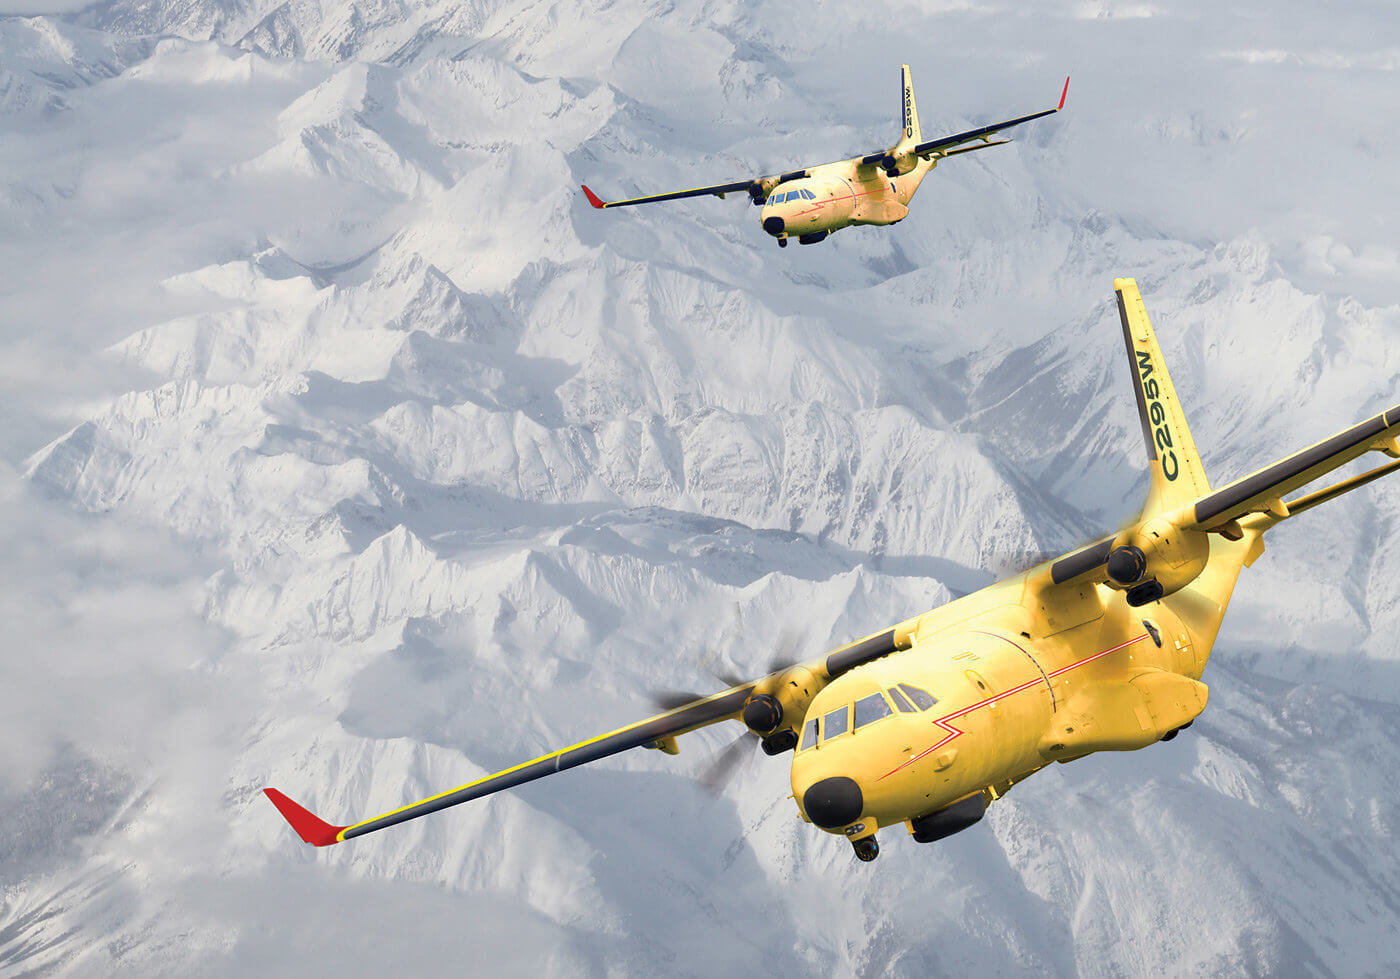 With the announcement that Airbus' C295W will be Canada's next fixed-wing search and rescue platform, the Canadian government concluded a torturous procurement decision that has dragged out over the past 14 years. Airbus Image